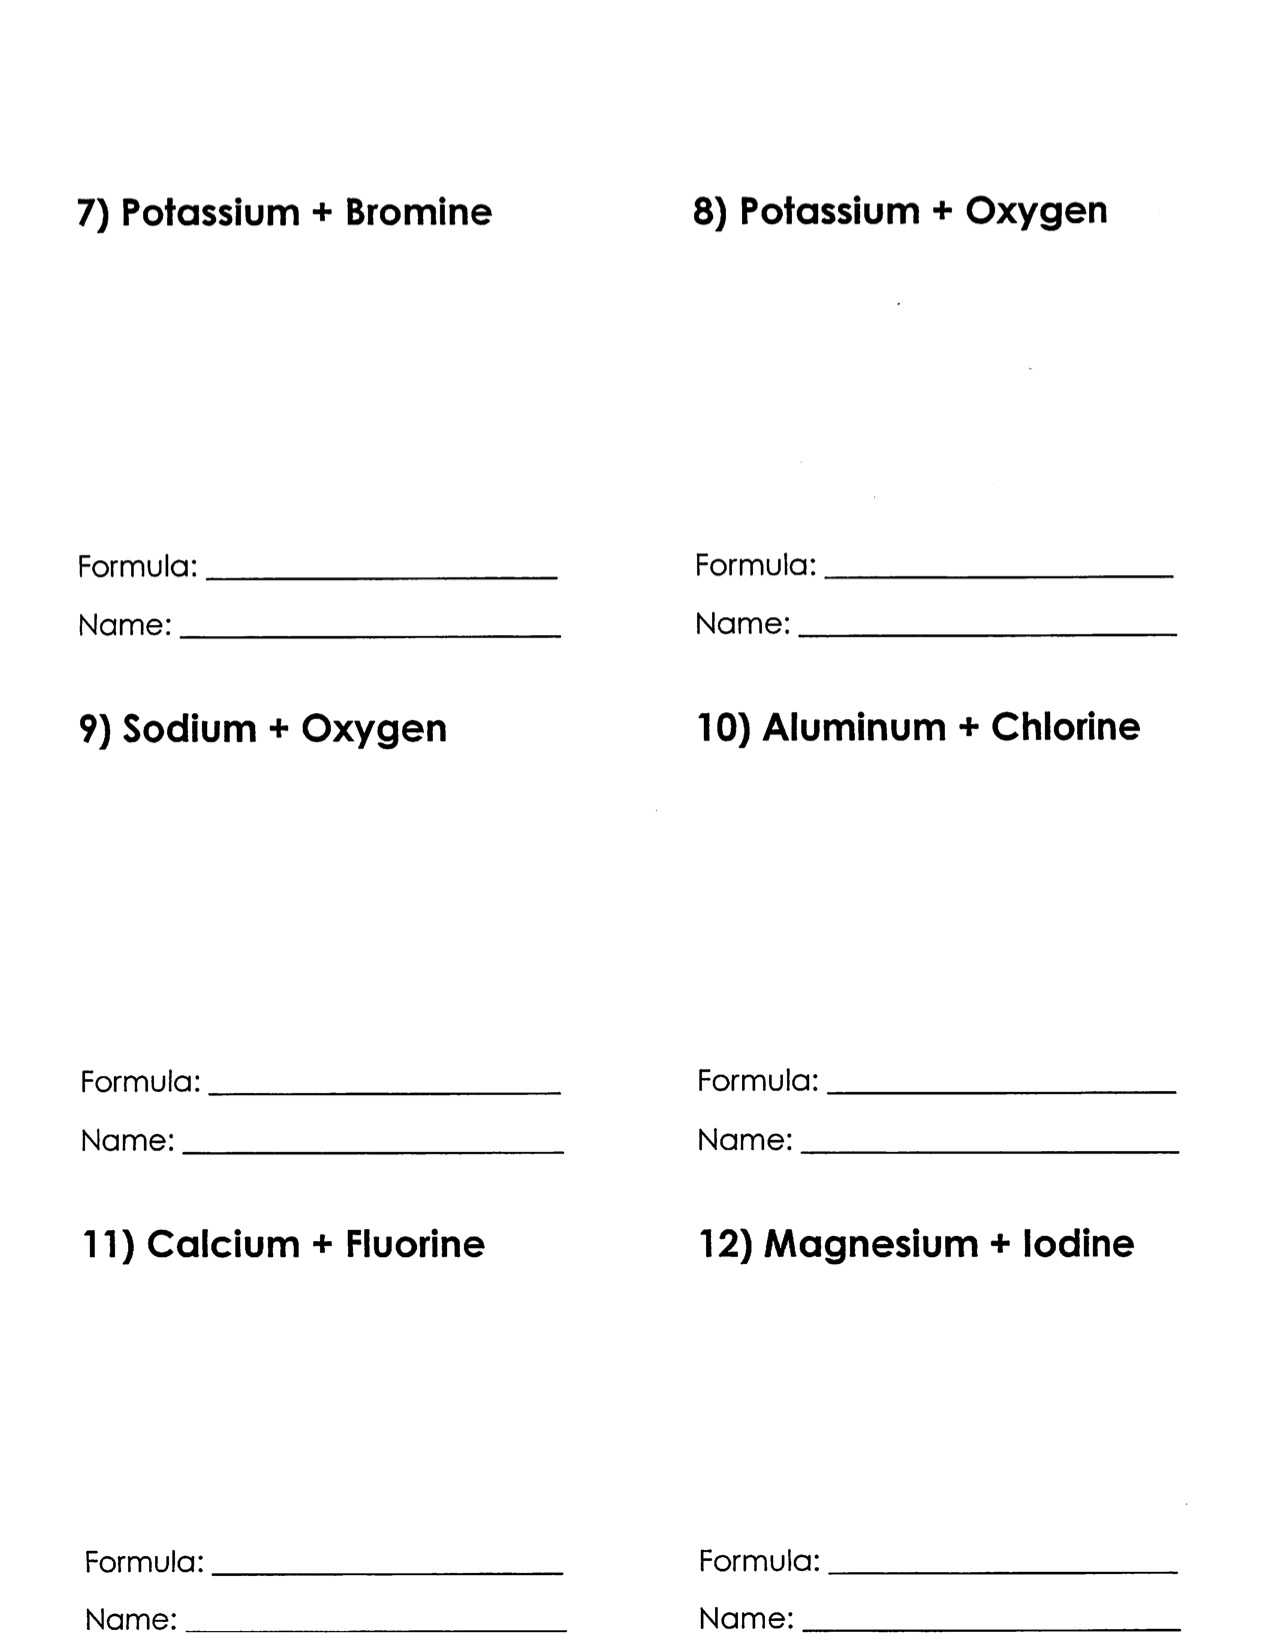 Ionic Bond Practice Worksheet Answers Along with Christopher White Warren County Public Schools